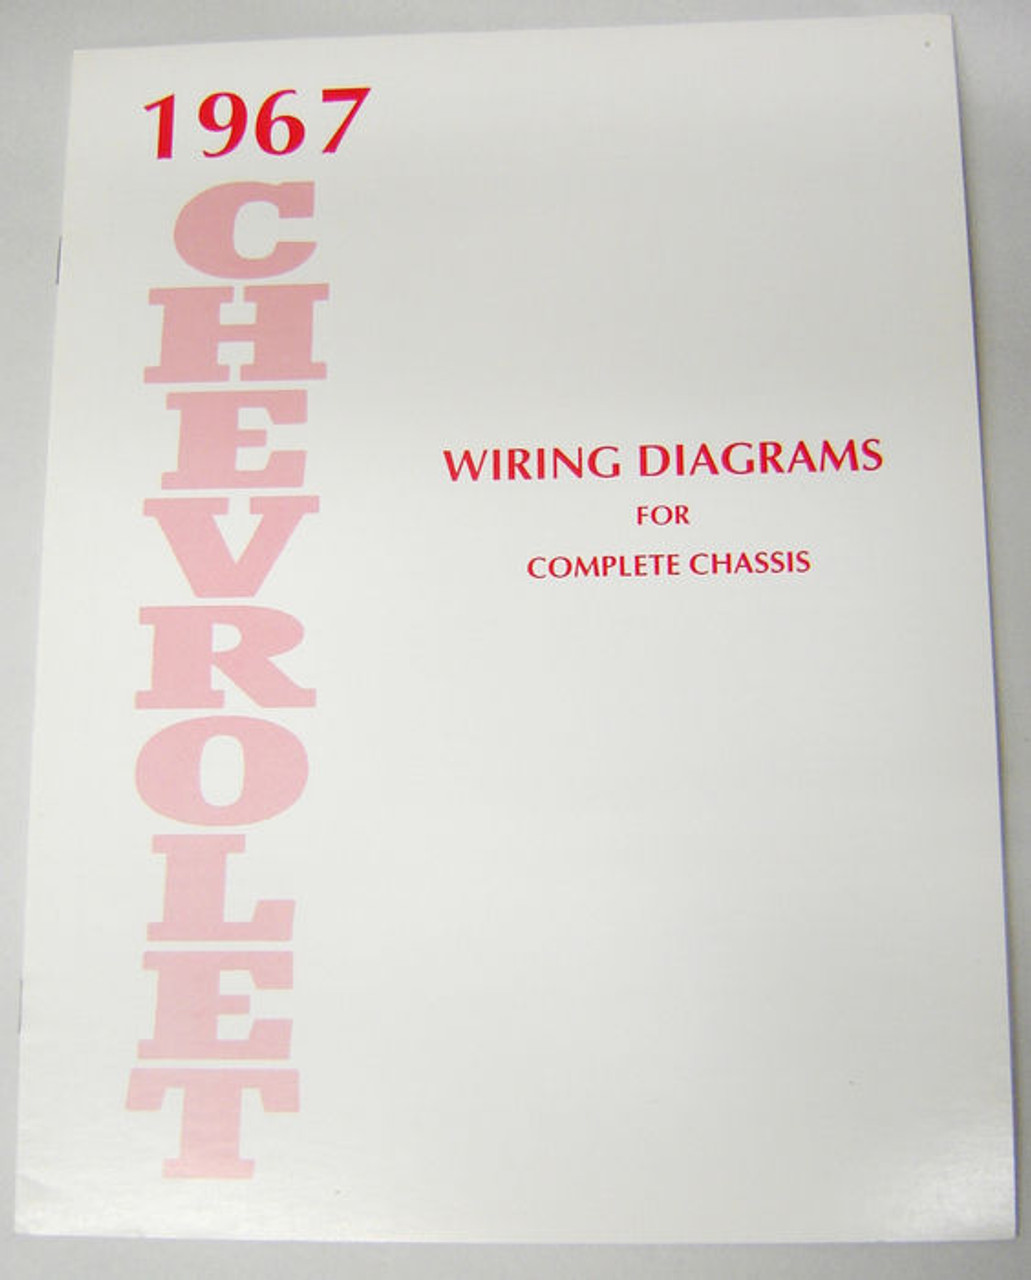 67 Chevy Wiring Diagrams - wiring diagrams